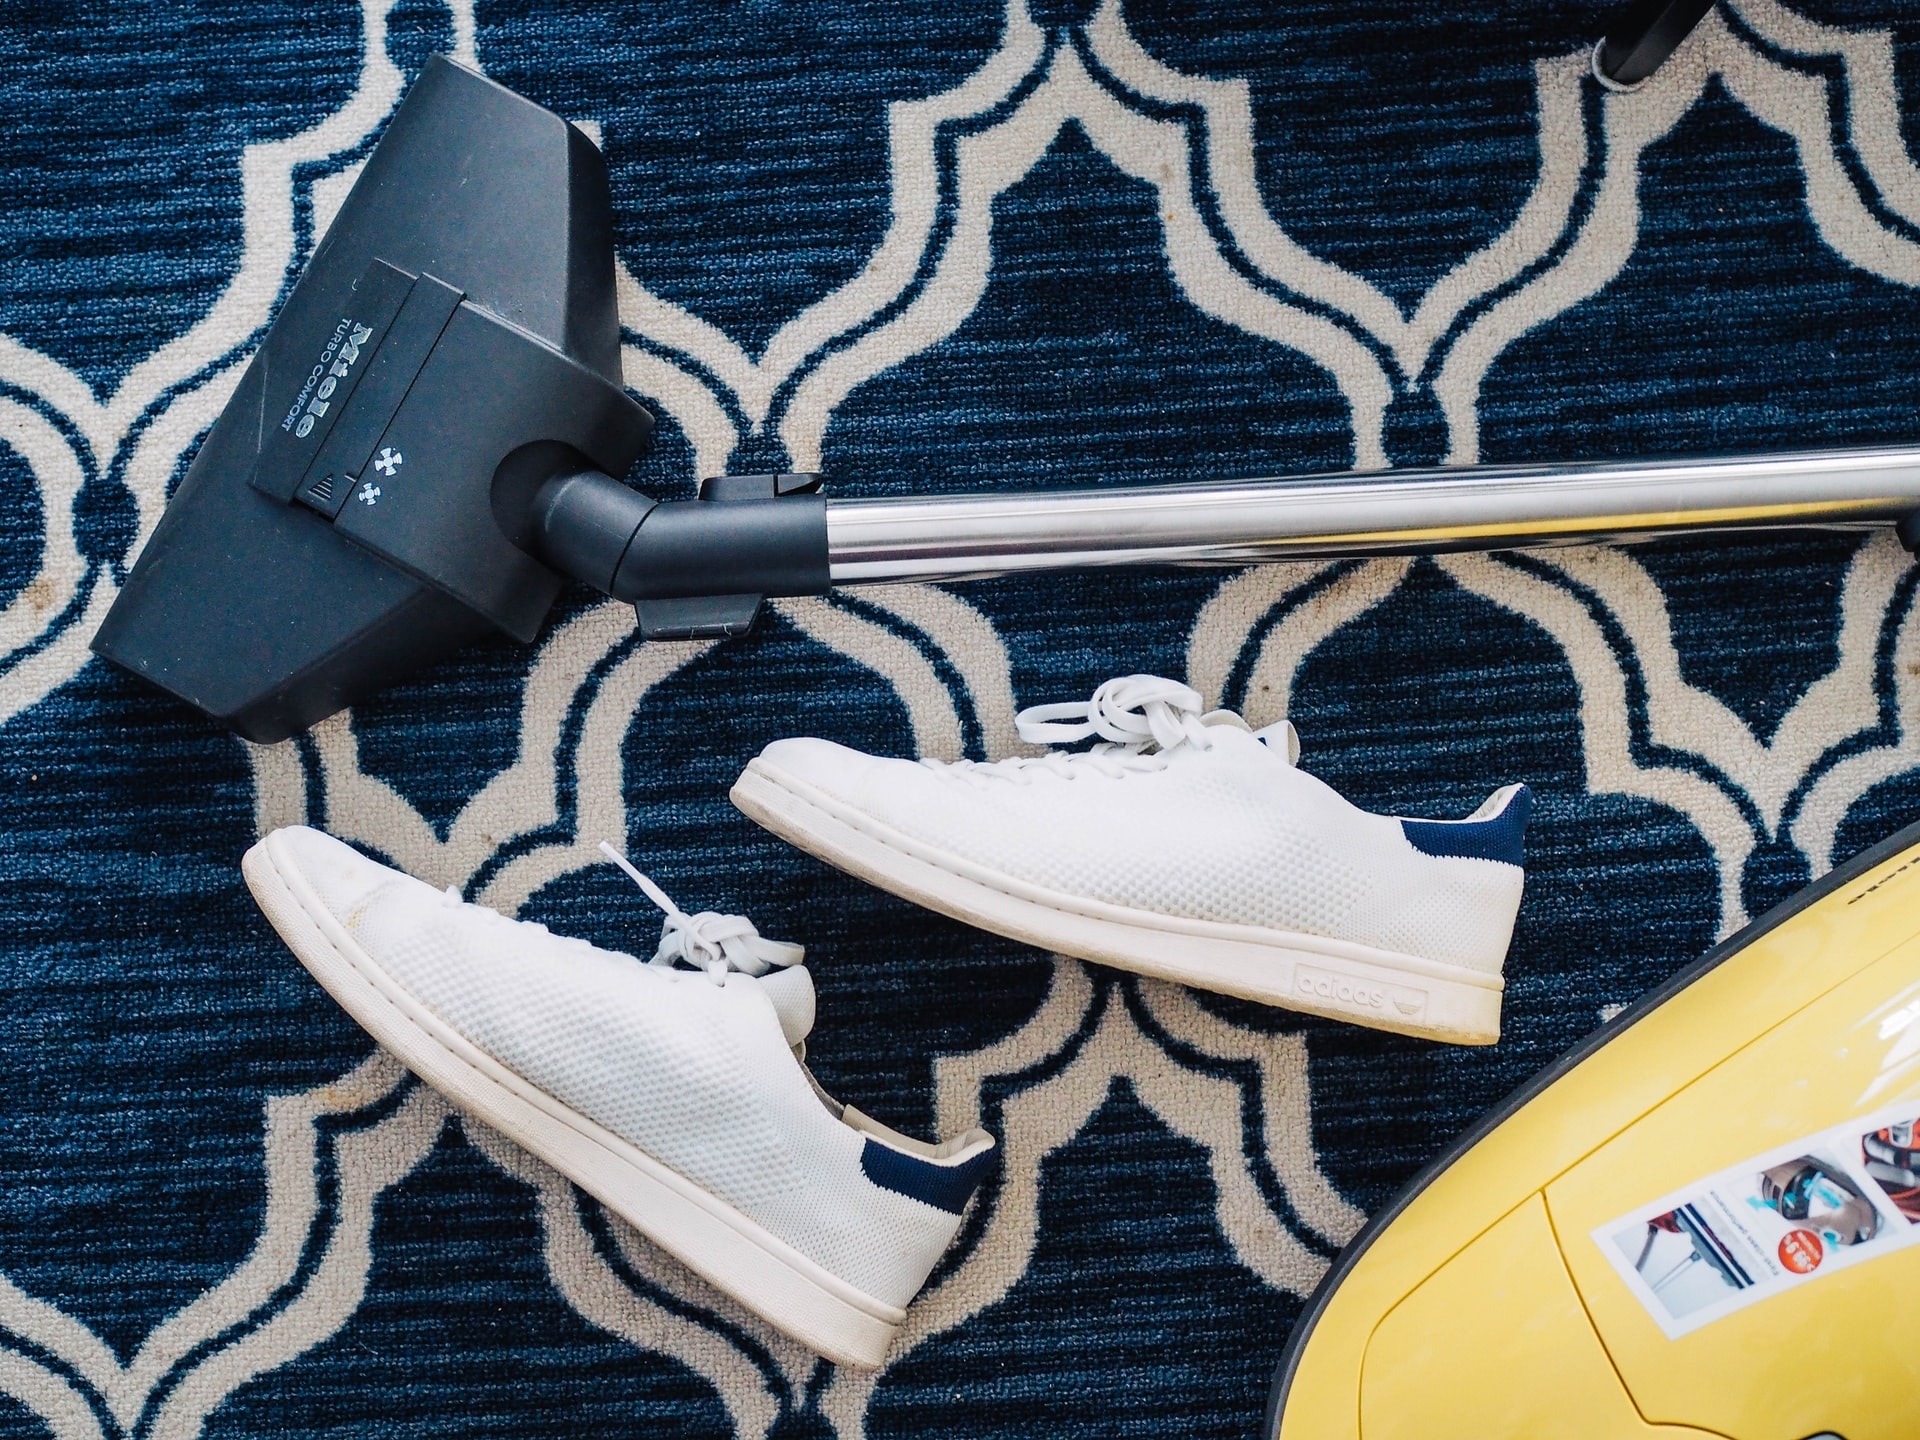 regular cleaning Vacuuming tips